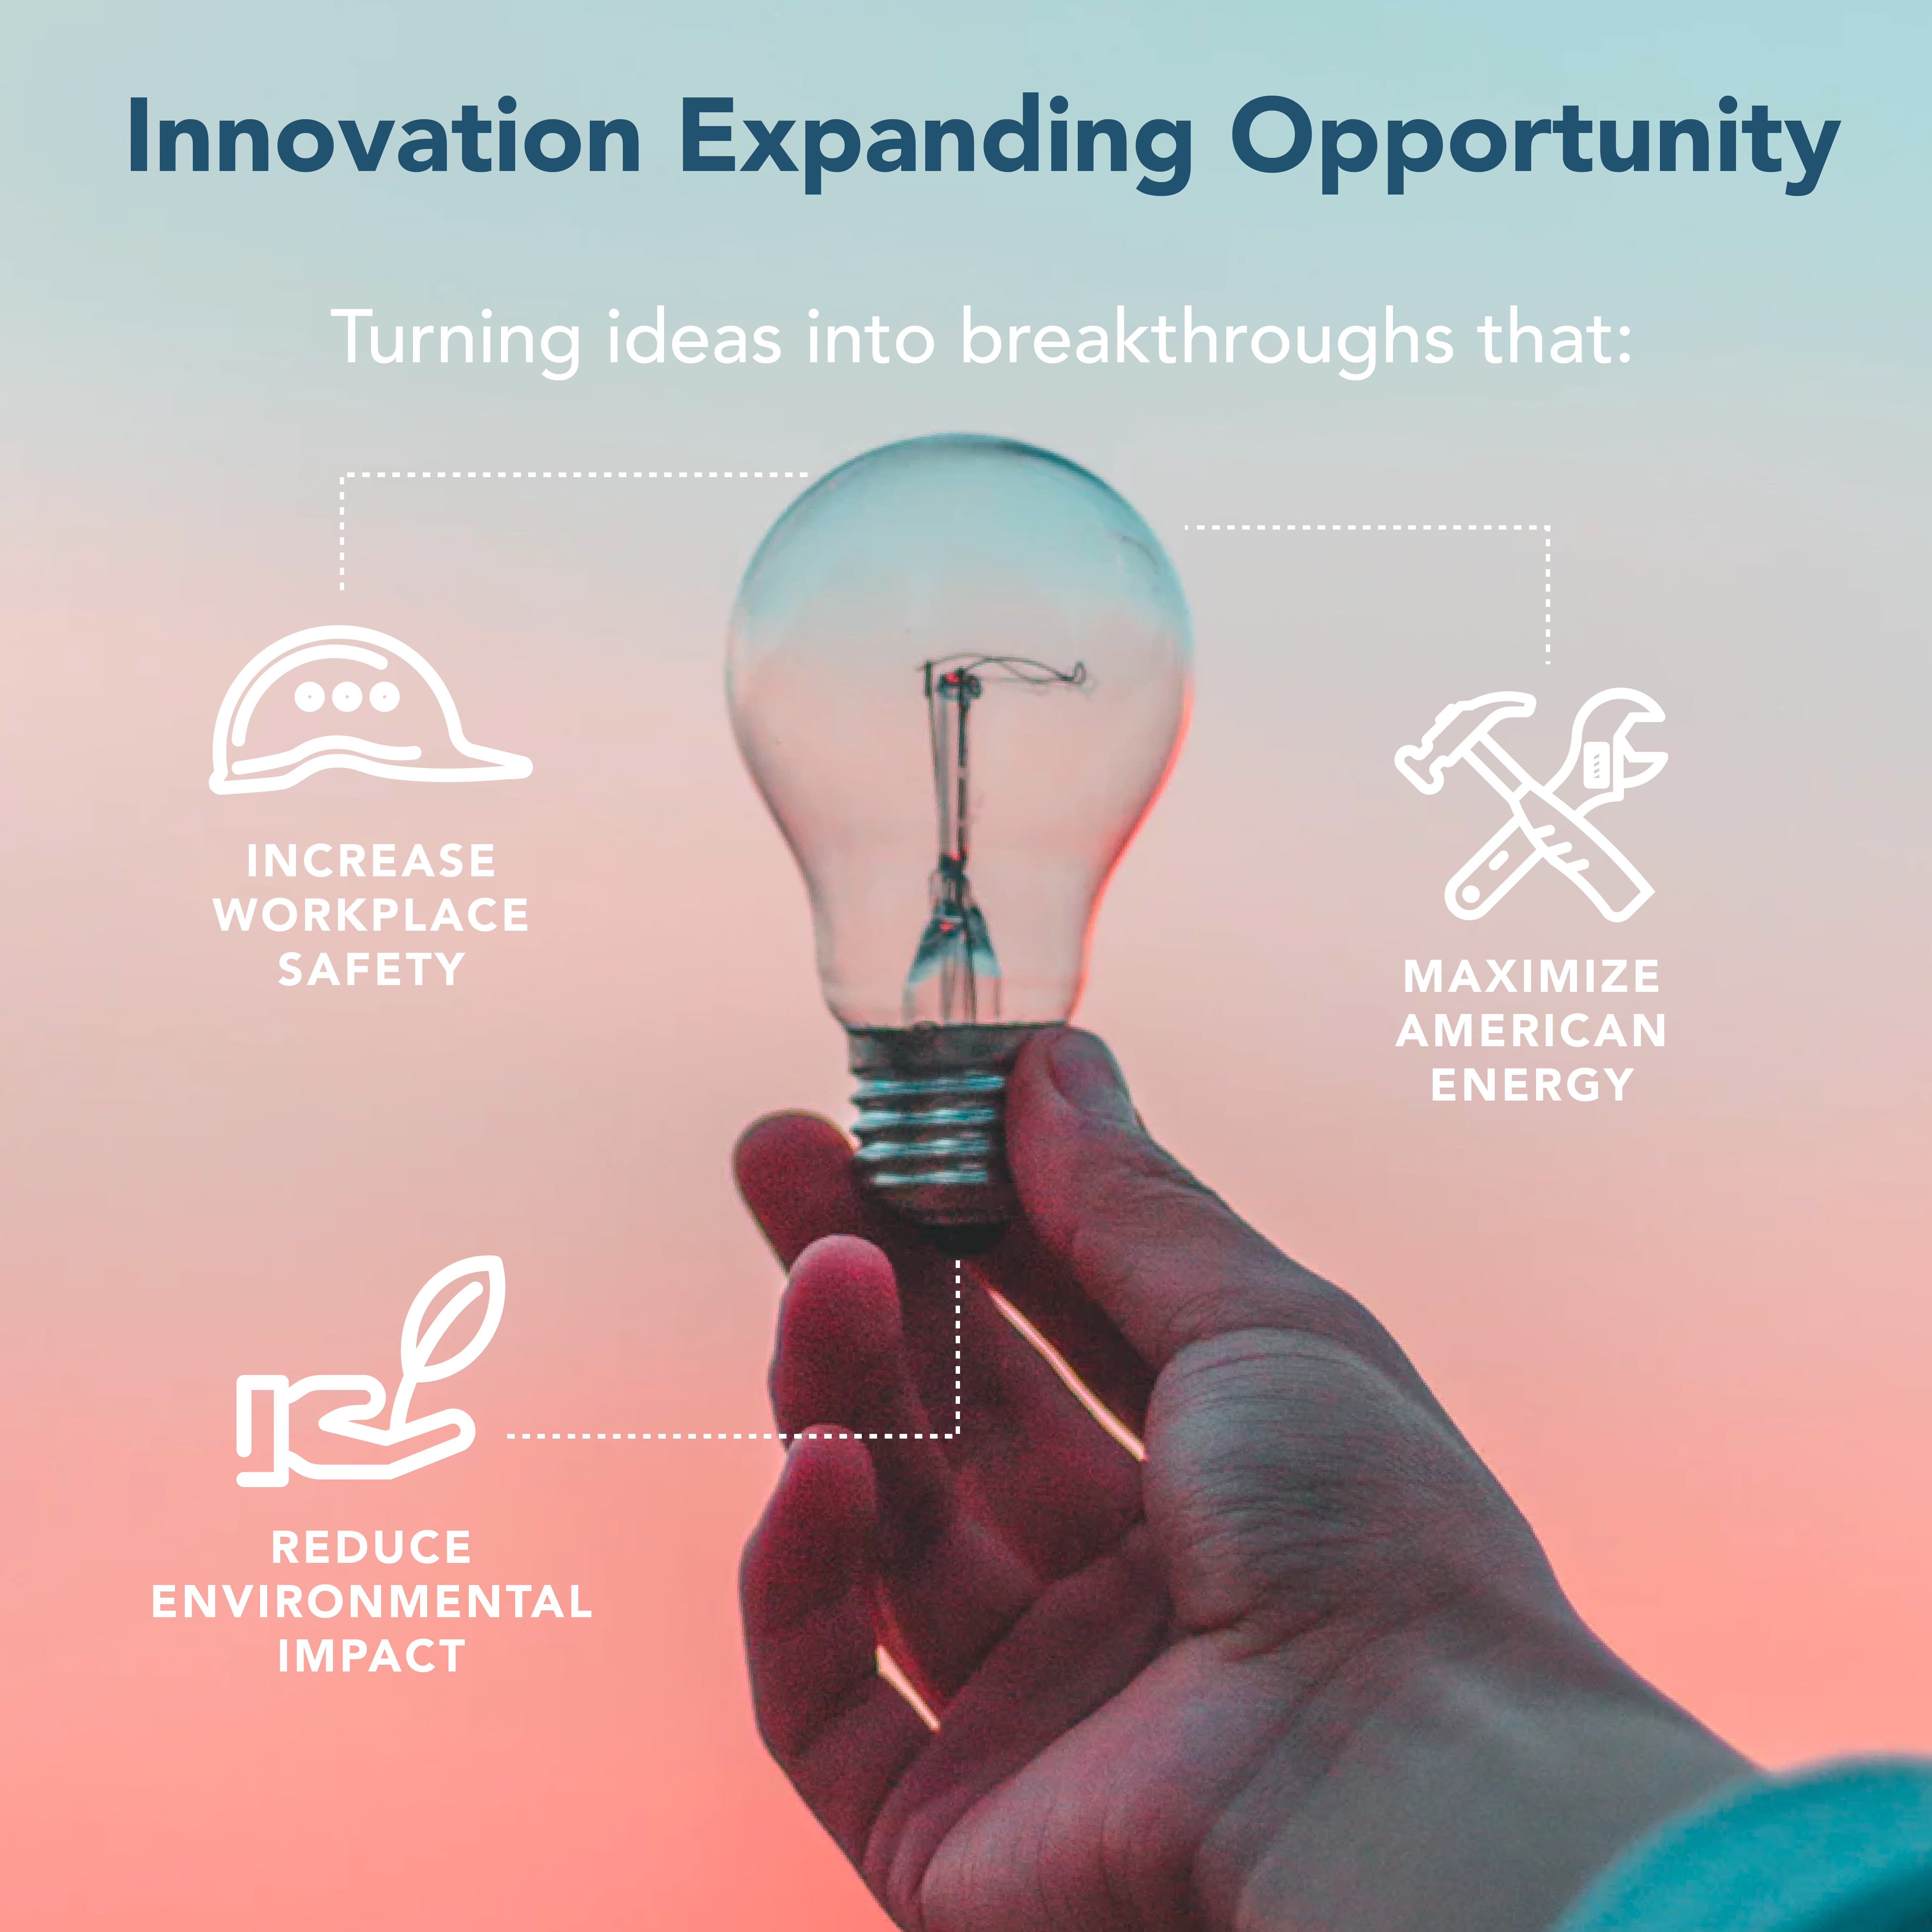 innovation expanding opportunity